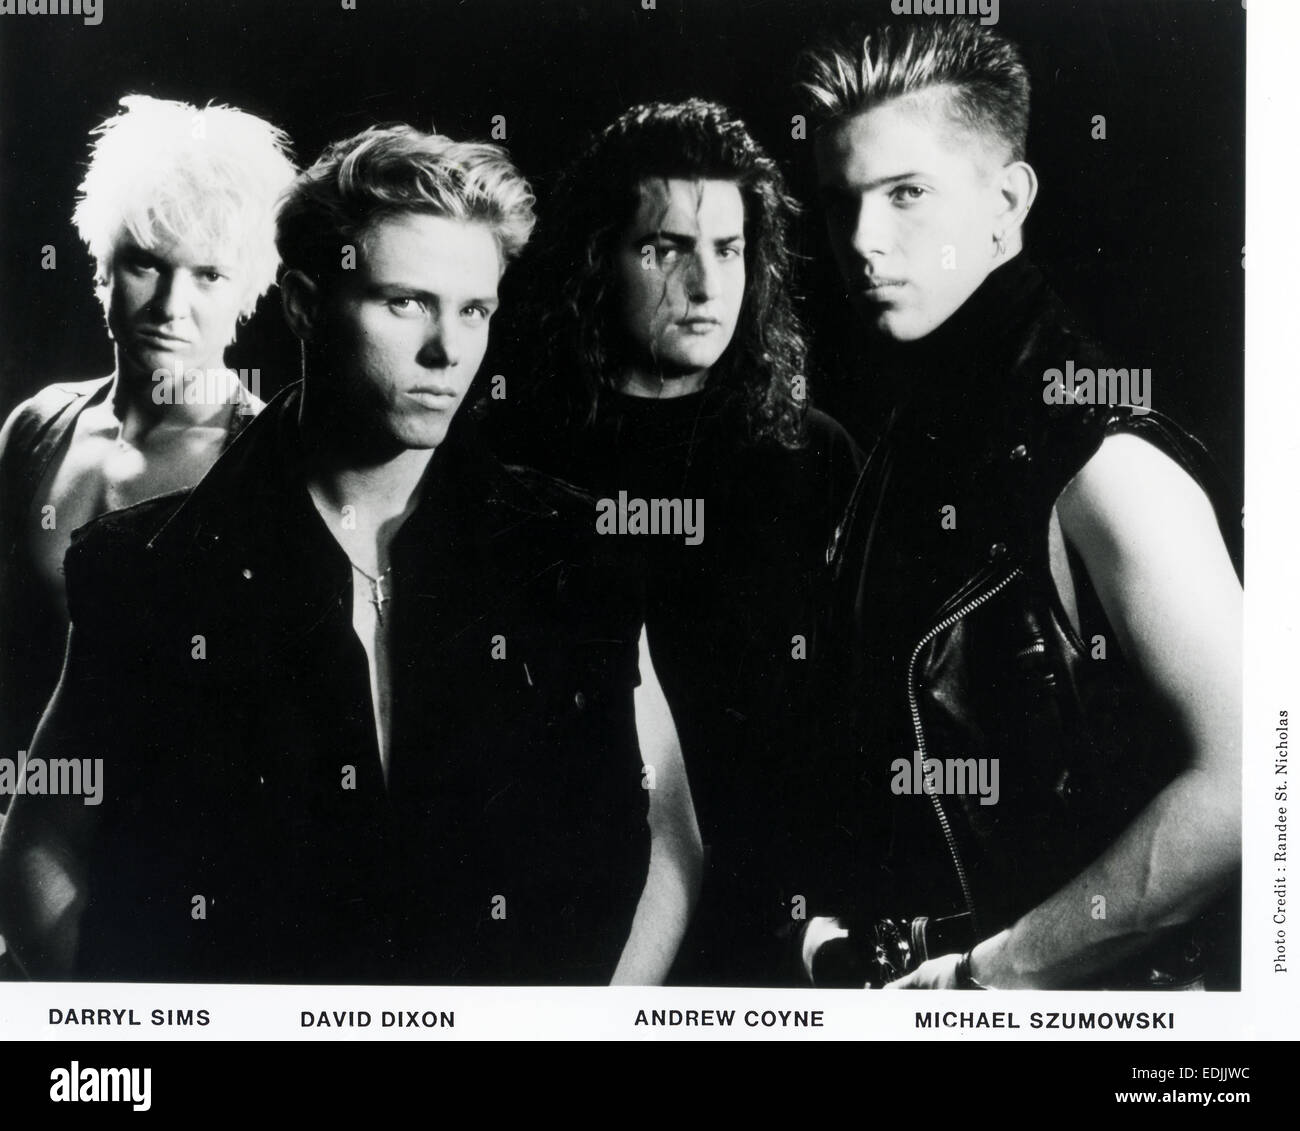 INDECENT OBSESSION Promotional photo of Australian rock group in 1990 - Stock Image